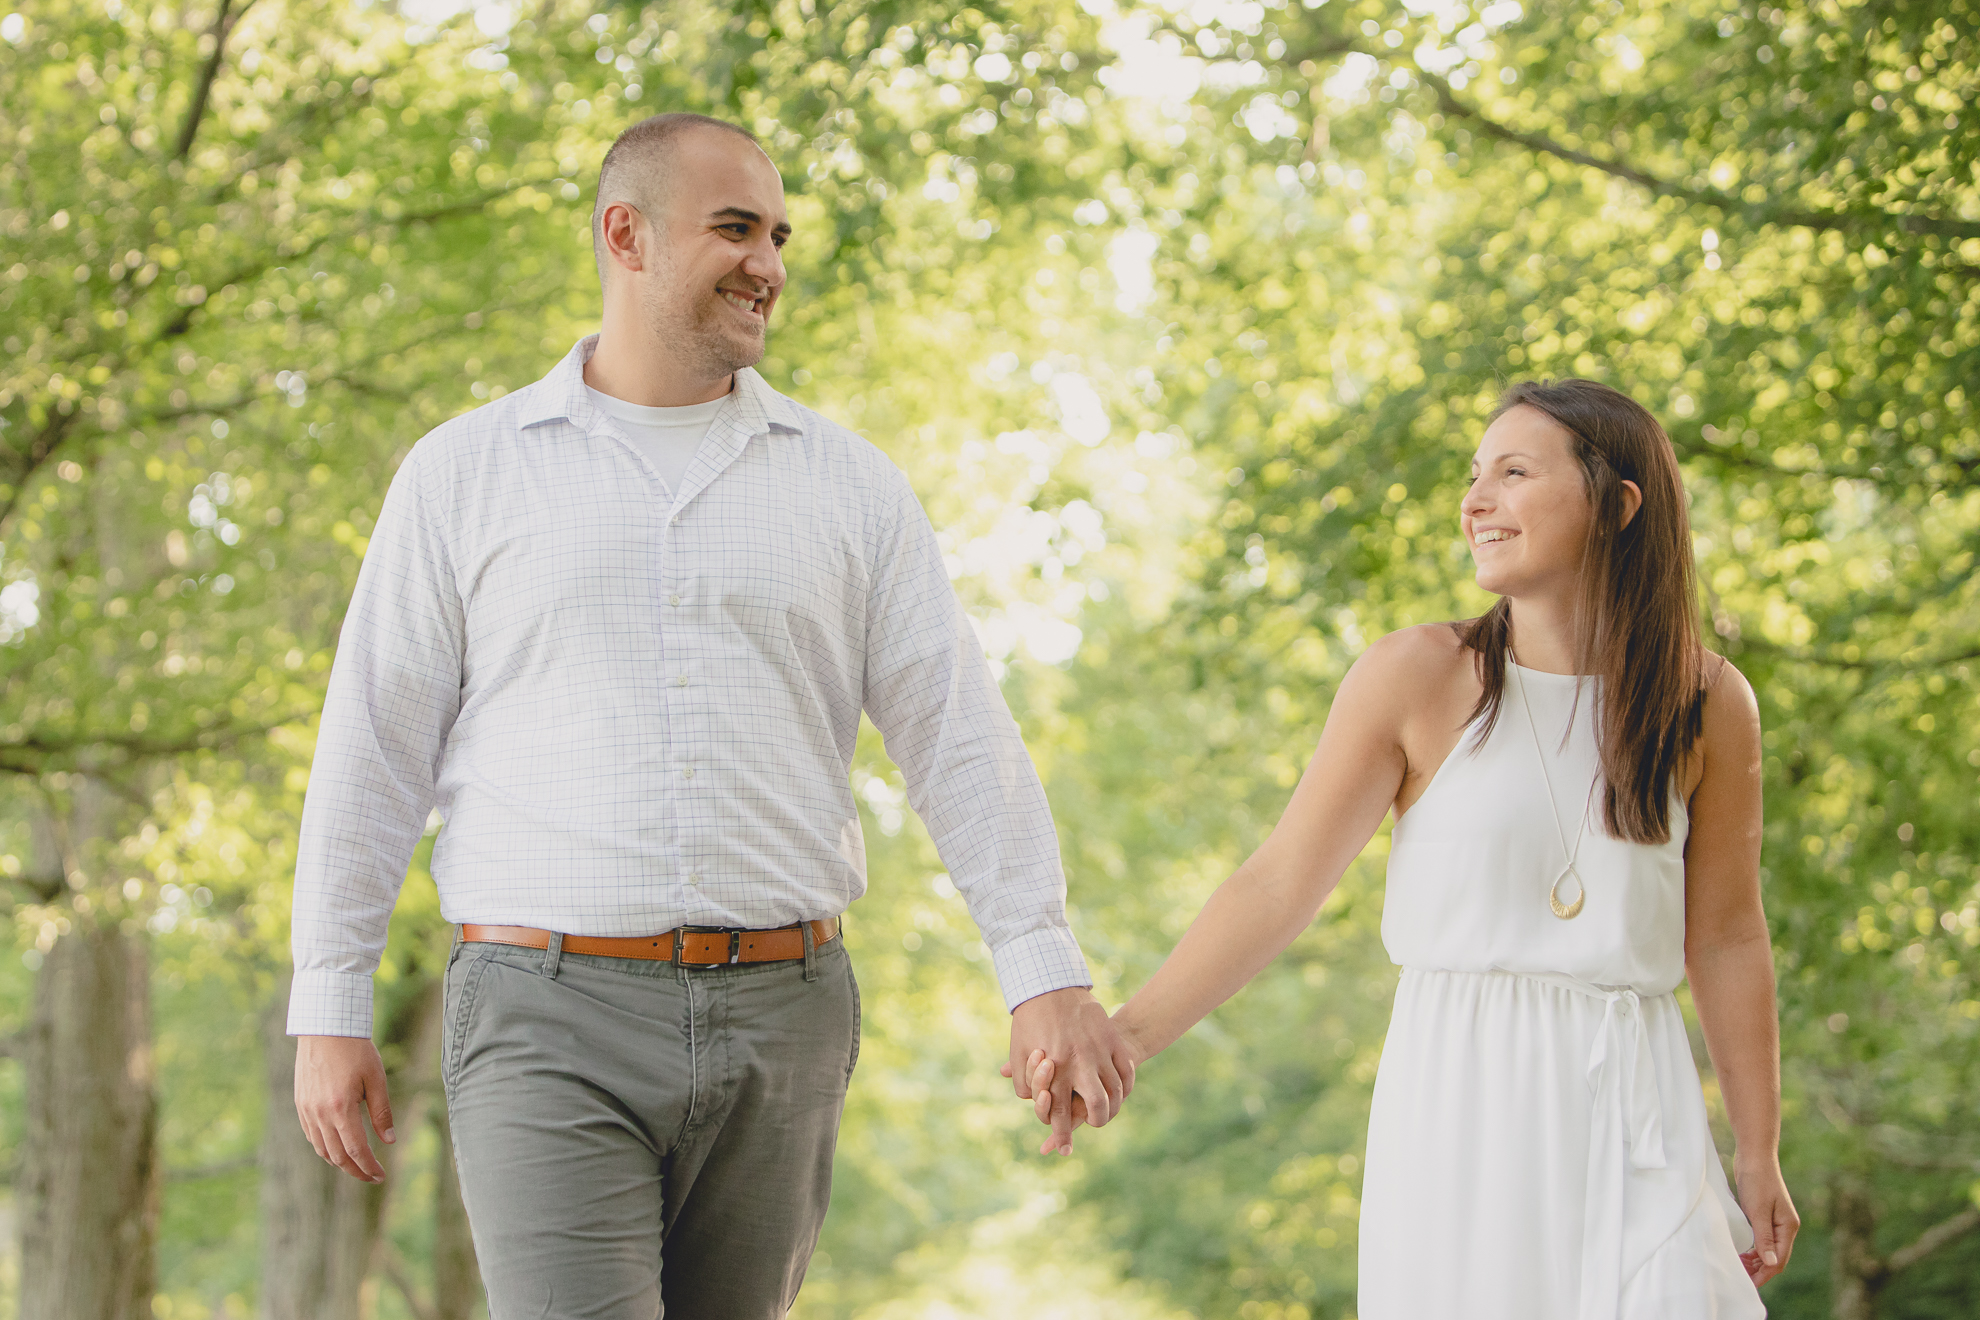 bride and groom laugh and hold hands while walking down tree lined road during wedding photography engagement portrait session at Knox Farm near Buffalo, NY